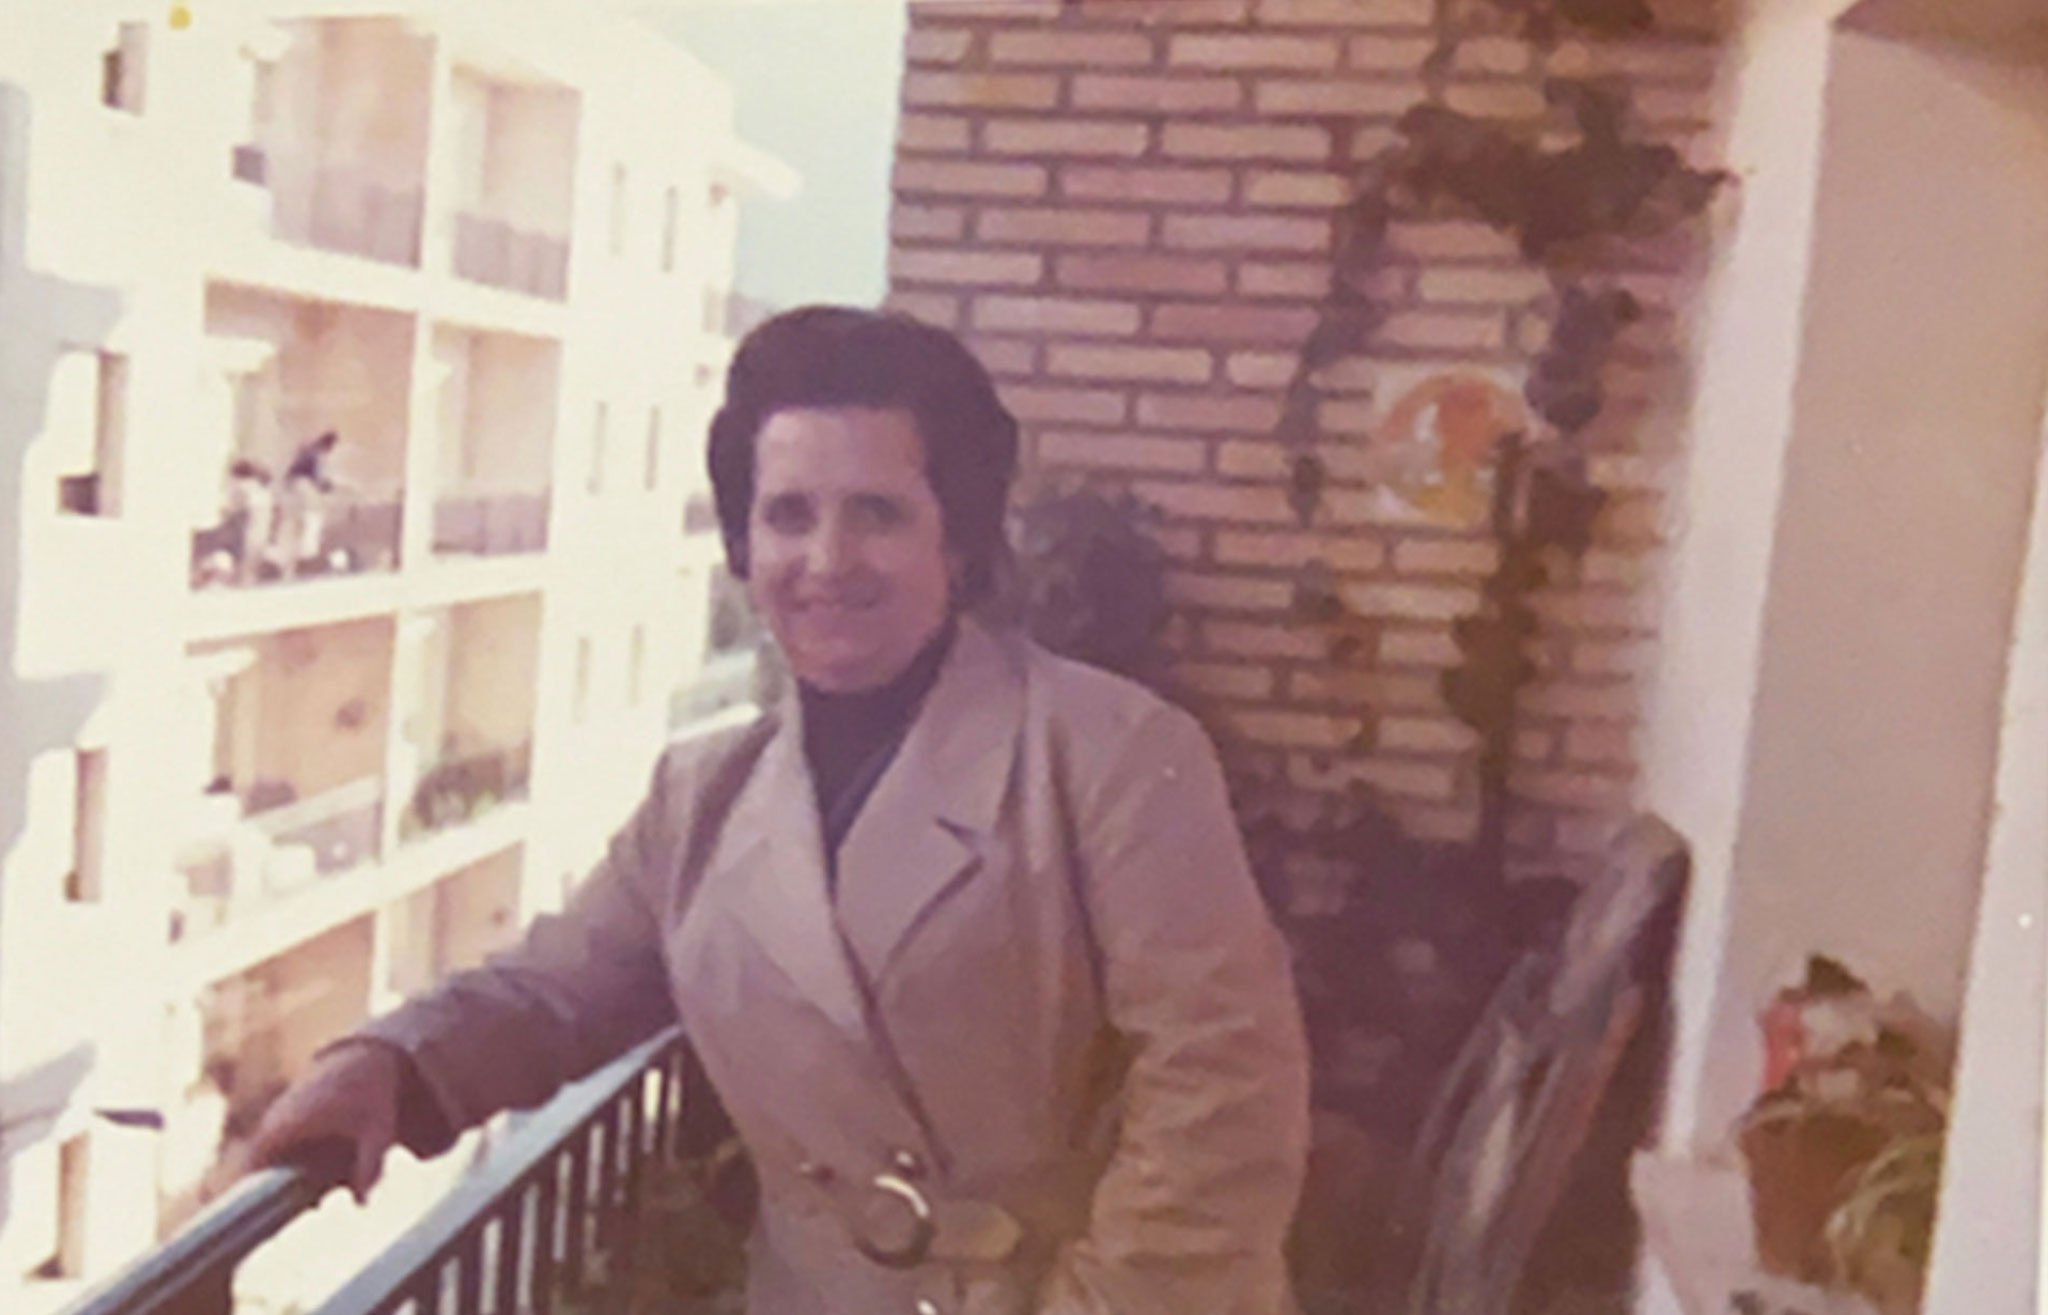 Asunción Molina, the mother of Carmelo Nofuentes, in 1968. Image taken from her balcony on Mallorca Street.